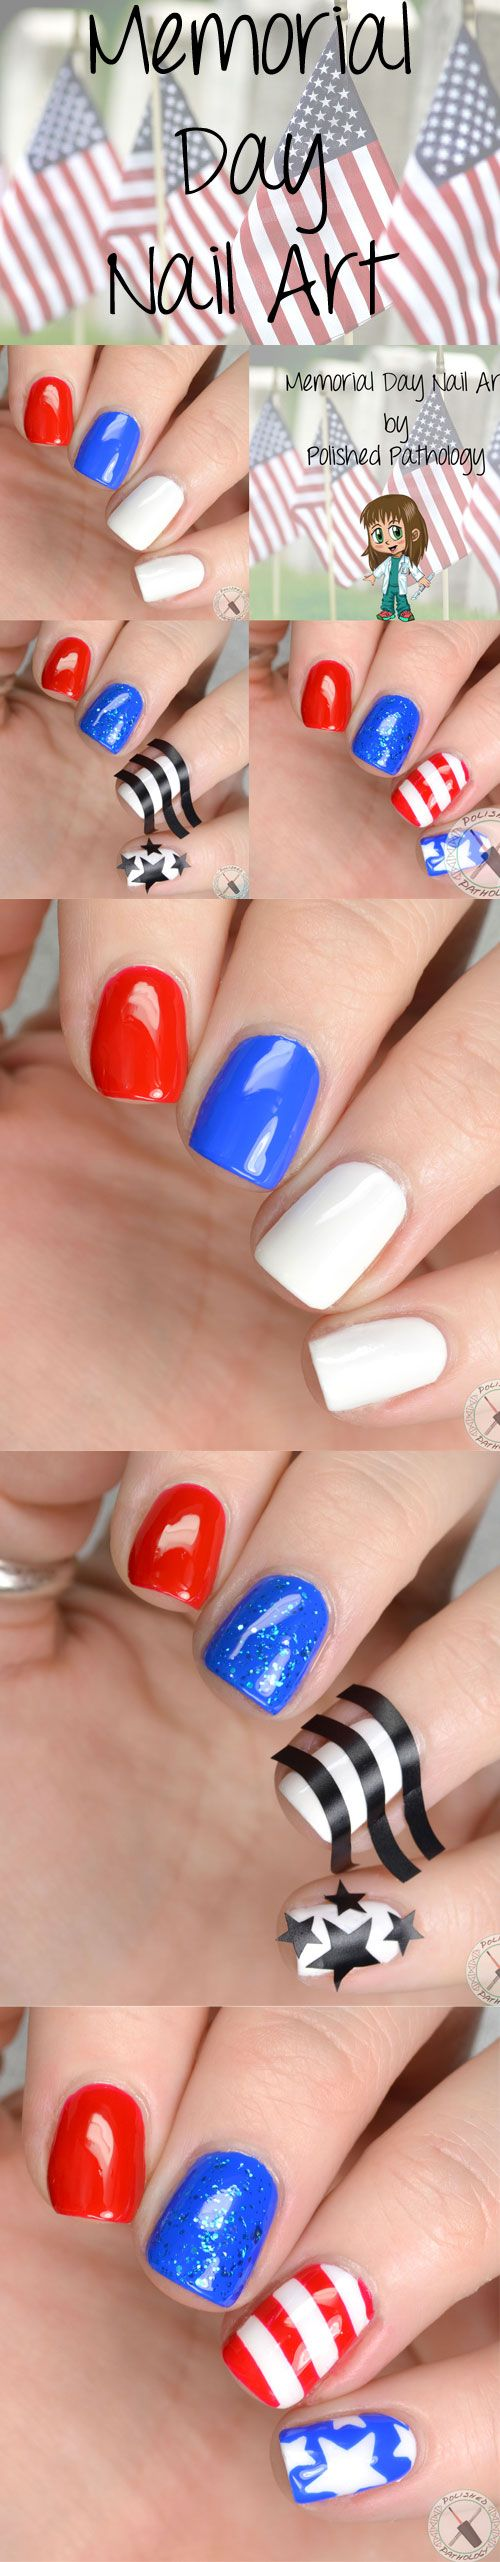 #MemorialDay Nail Art by Polished Pathology Using Vibrany Vinyls and Sinful Colors